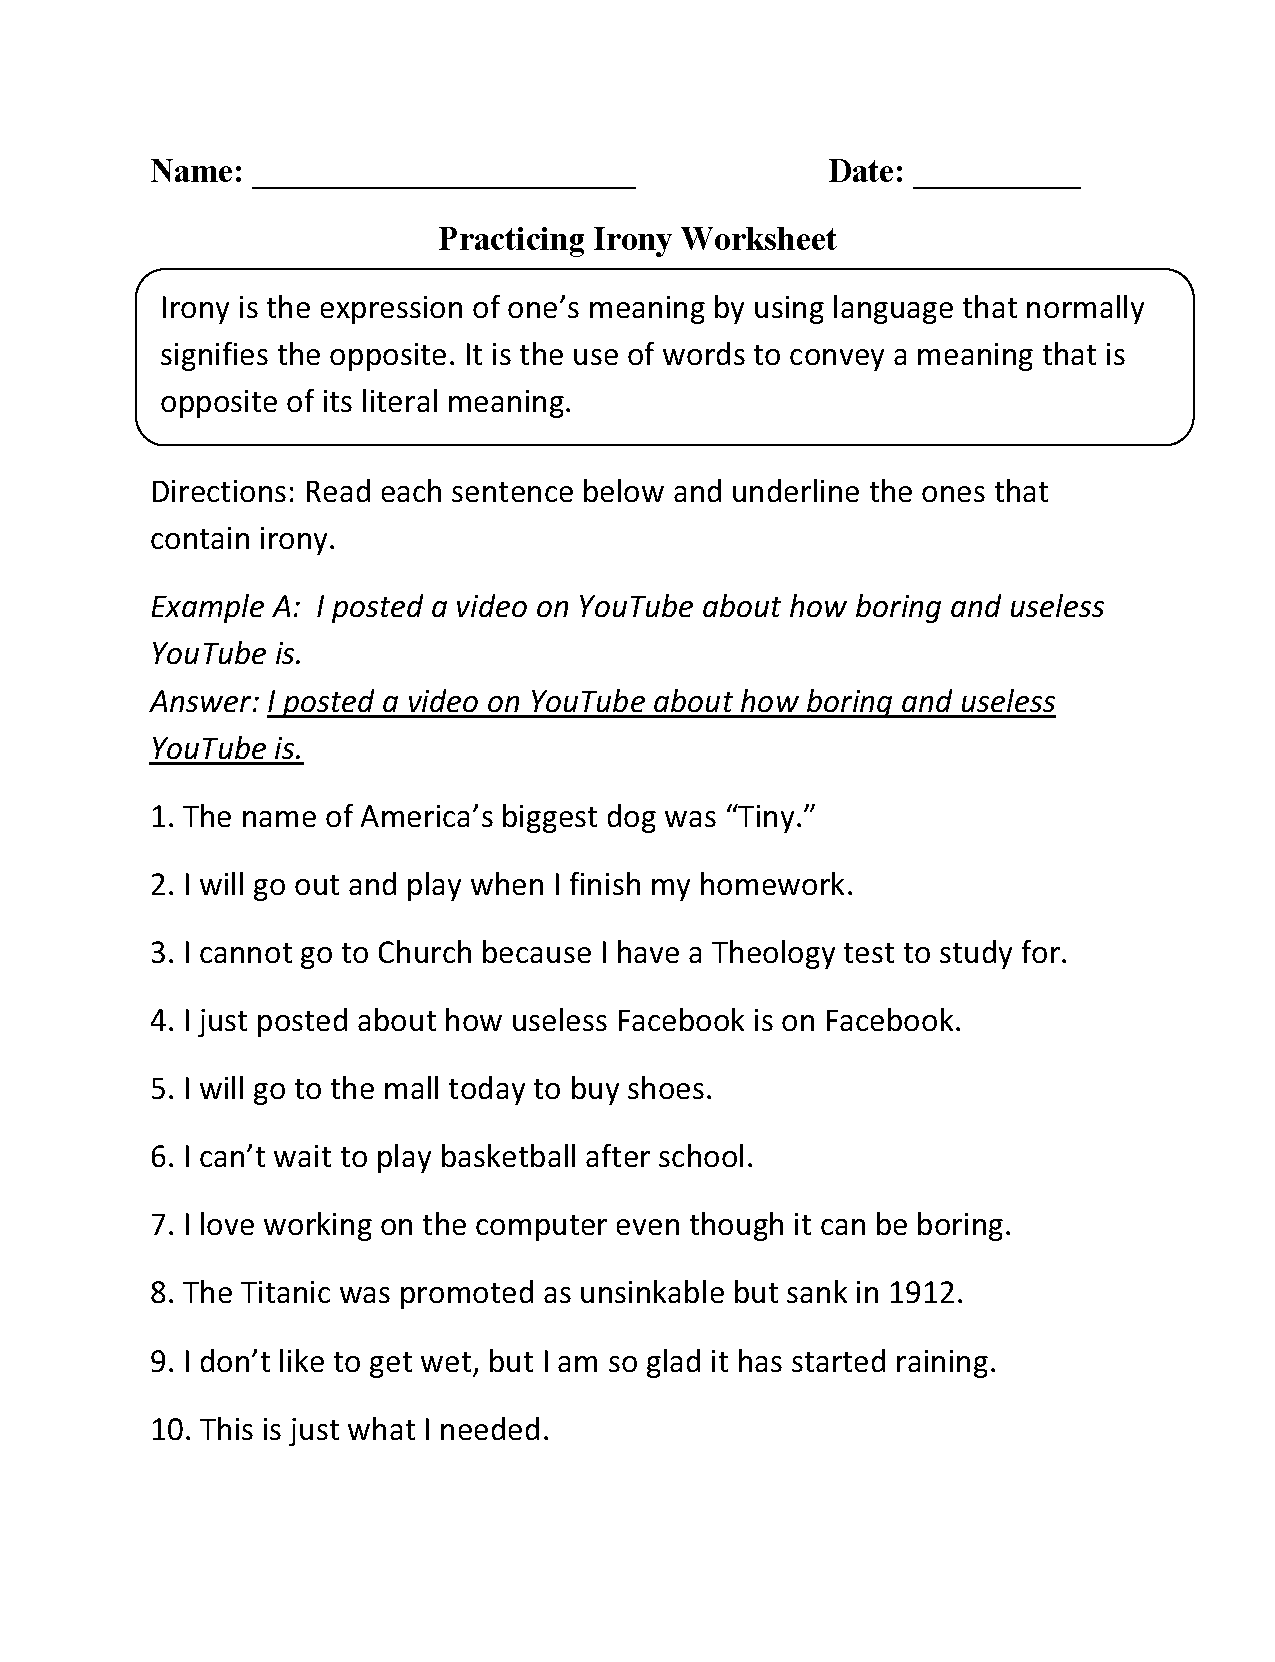 Worksheets Irony Worksheet figurative language worksheets irony practicing worksheet